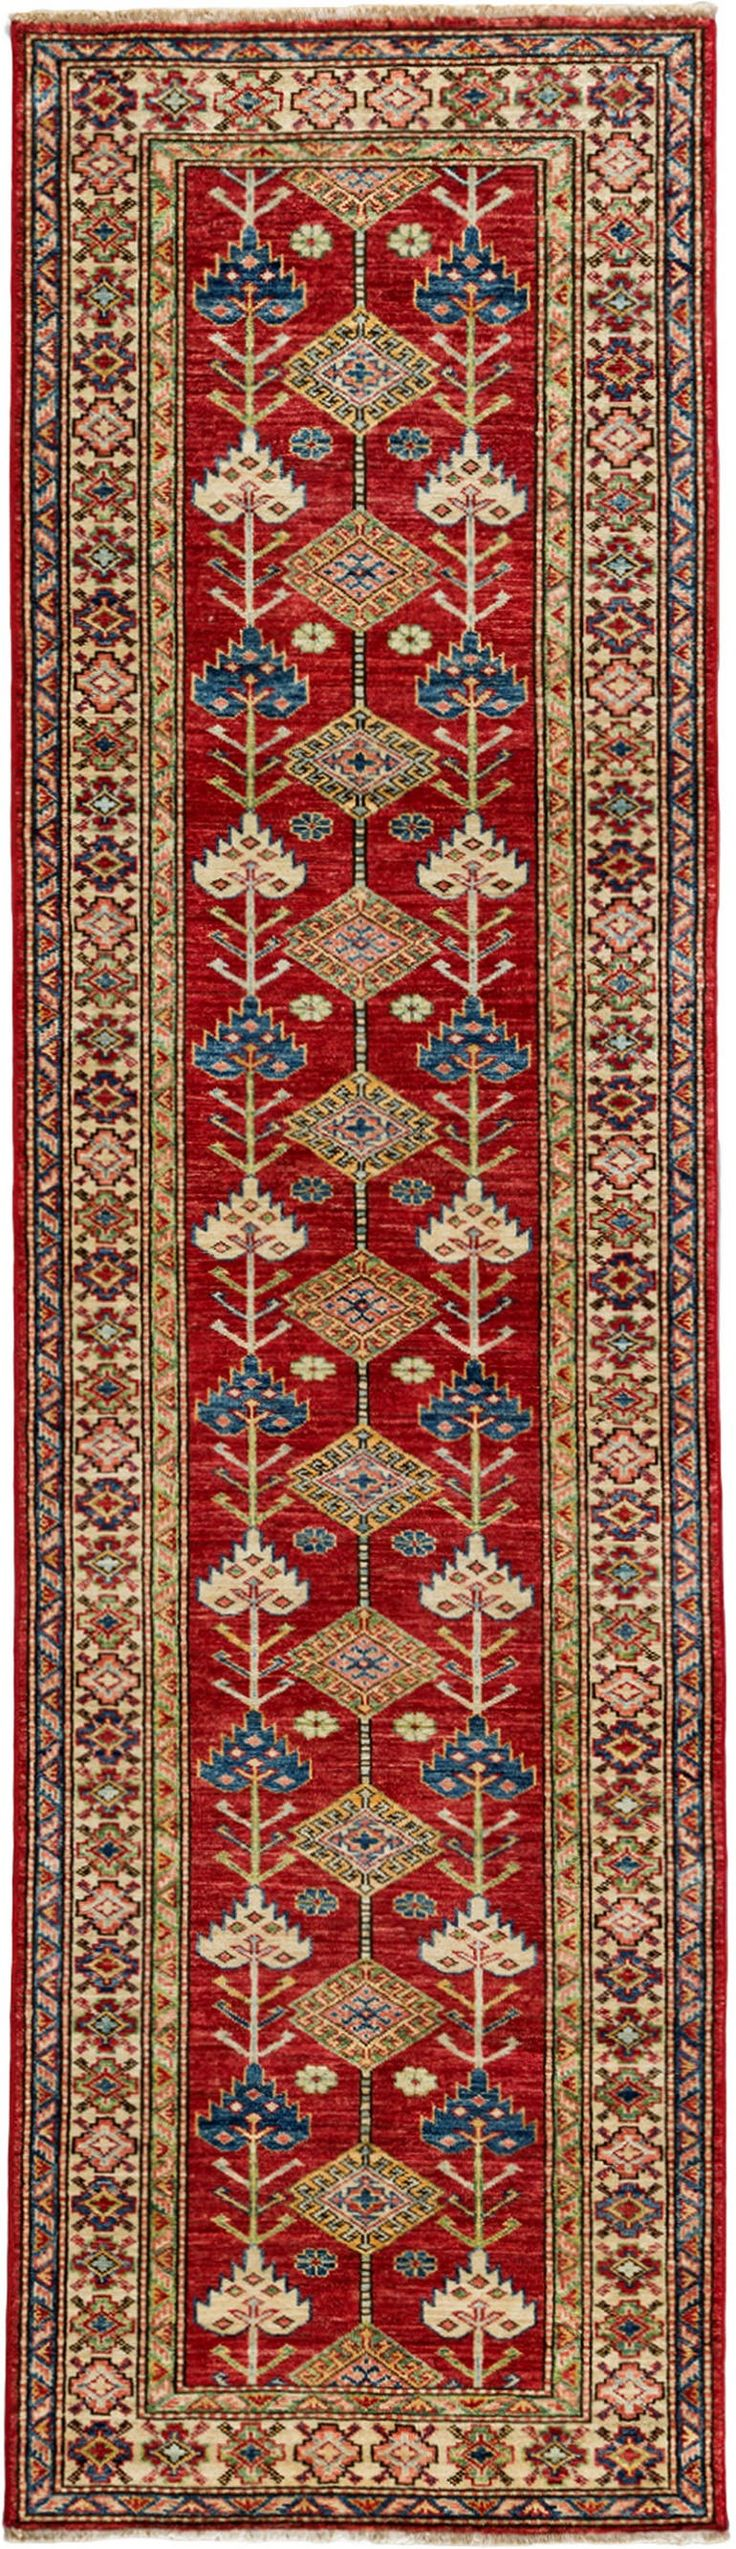 Kazak, Hand Knotted Runner   2 8 X 9 10  Traditional, Wool, New by Solo Rugs